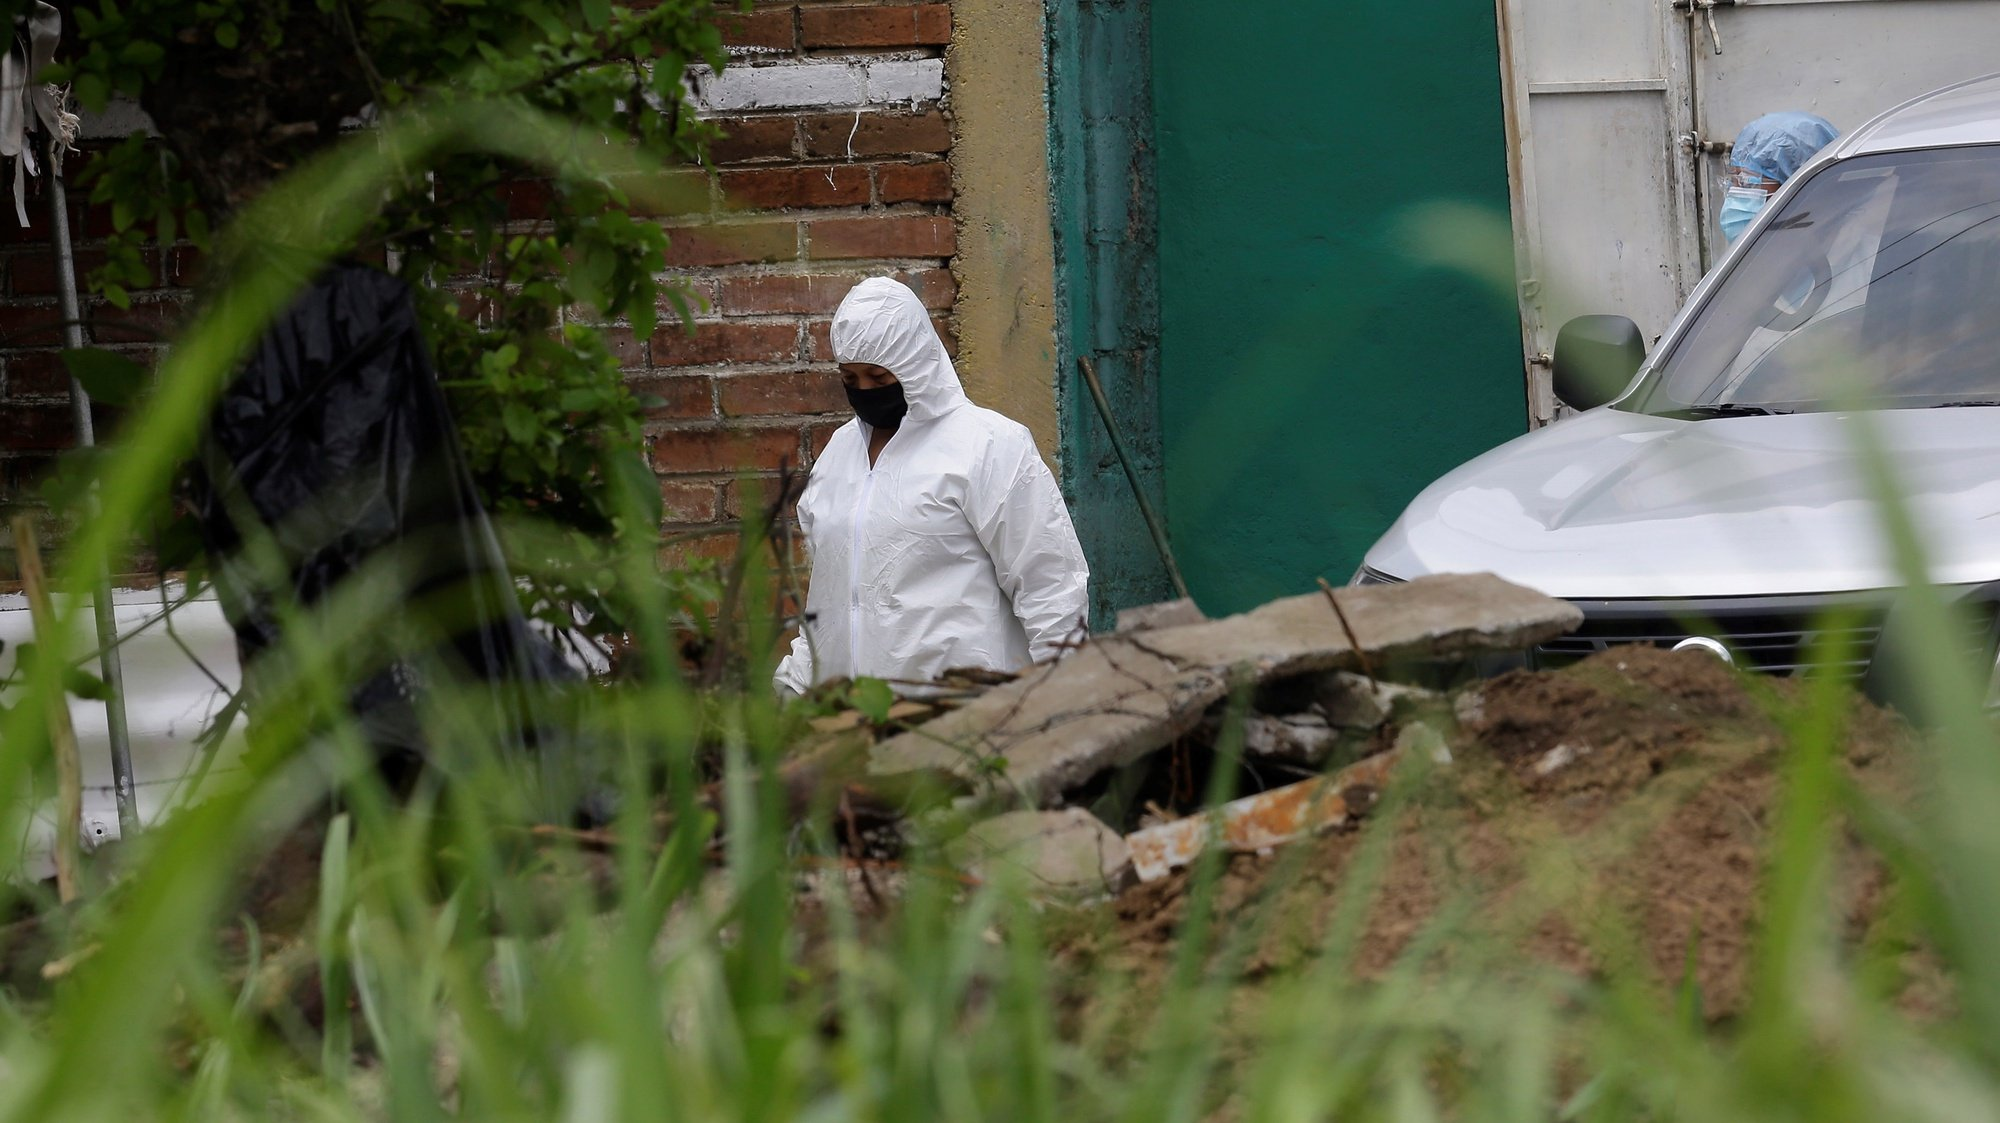 epa09217666 Forensic teams, members of the Attorney General's Office, and police officers work during a search for human remains at the house of former police officer Hugo Ernesto Osorio, who is being investigated for homicide, in Chalchuapa, northwest of San Salvador, El Salvador, 20 May 2021 (issued 21 May 2021).  EPA/RODRIGO SURA